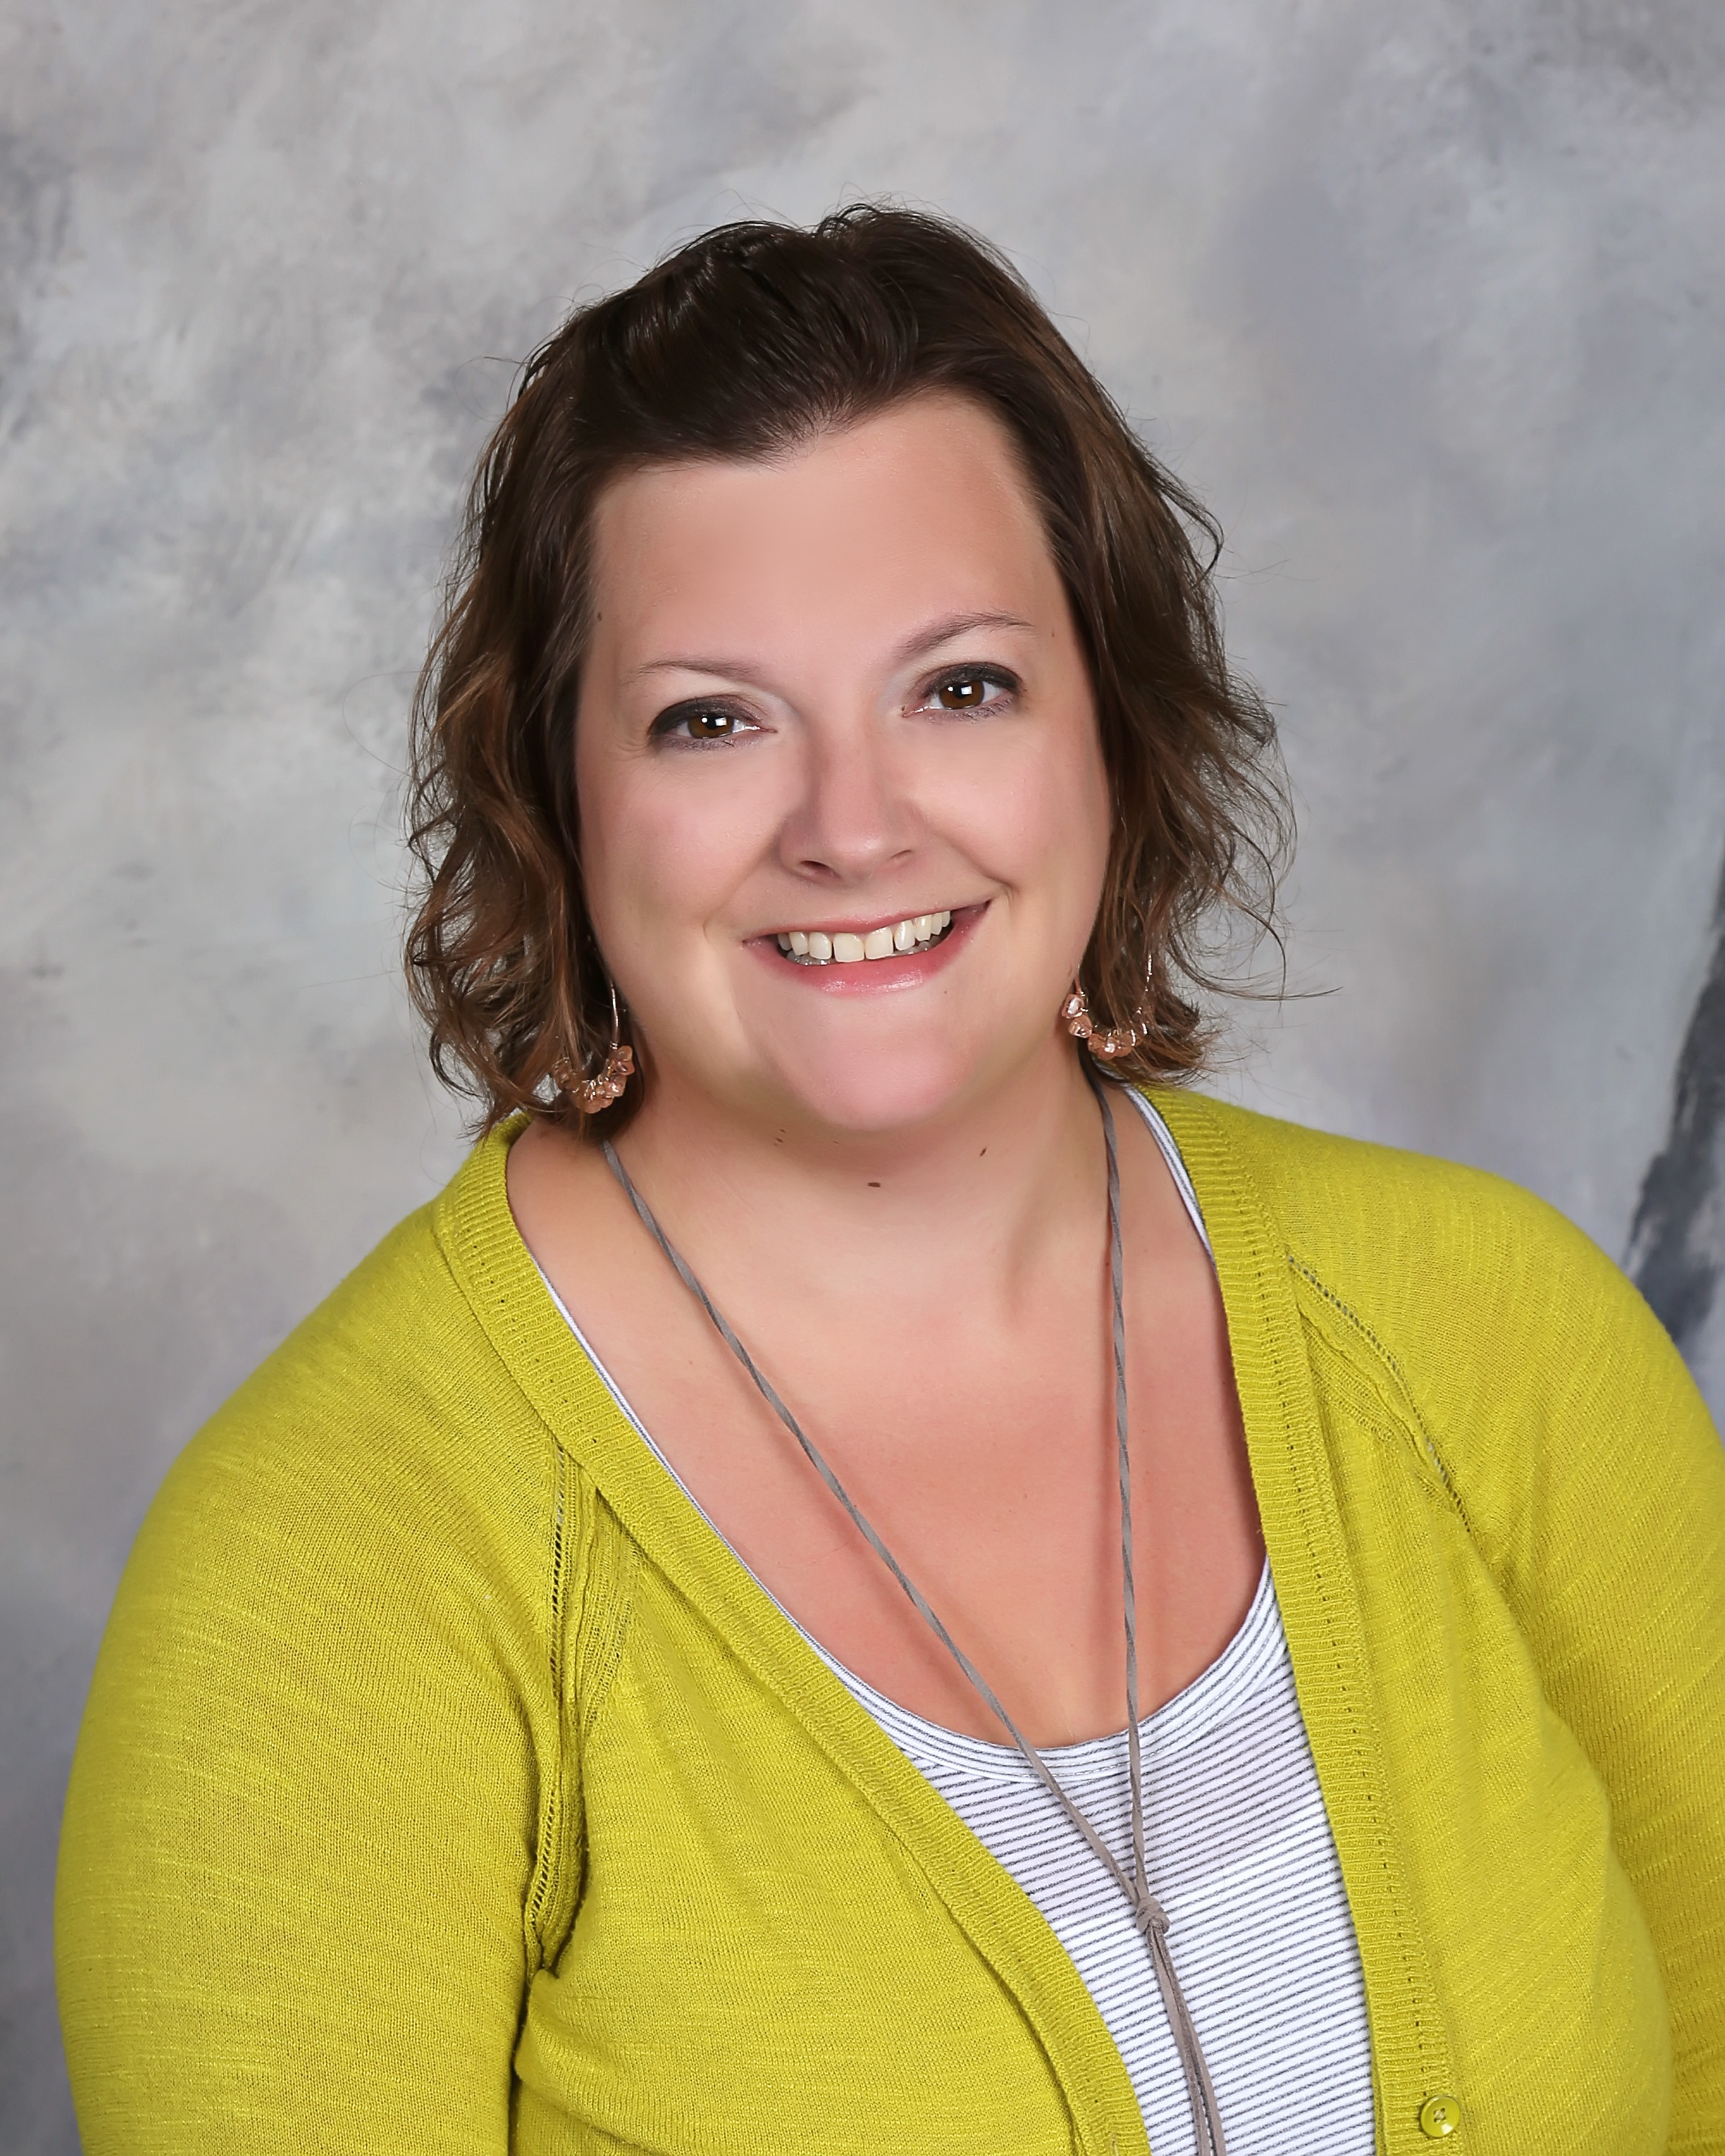 Michelle Halladay, LIMHP, LADC Clinical Director